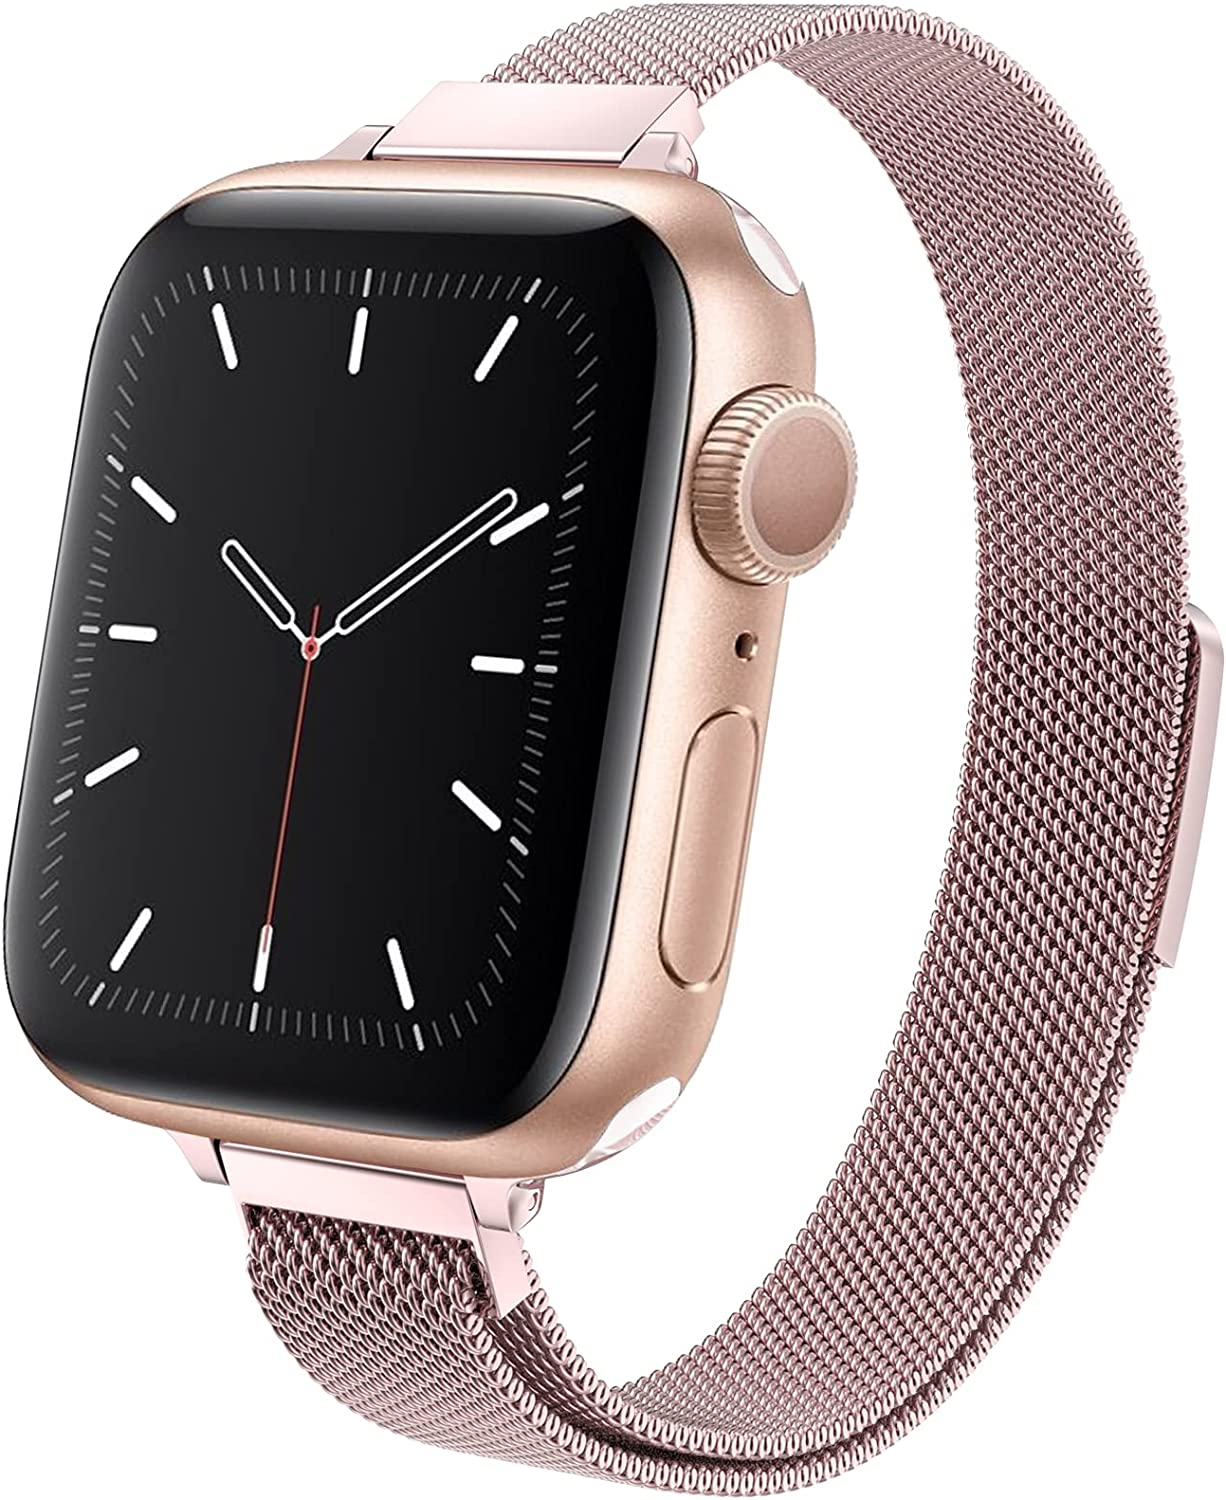 MRAIN-H Compatible with Apple Watch Band 38mm/40mm/42mm/44mm, Slim & Thin Stainless Steel Women Wristband with Strong Magnetic Clasp Replacement Band for iWatch Series 6/SE/5/4/3/2/1